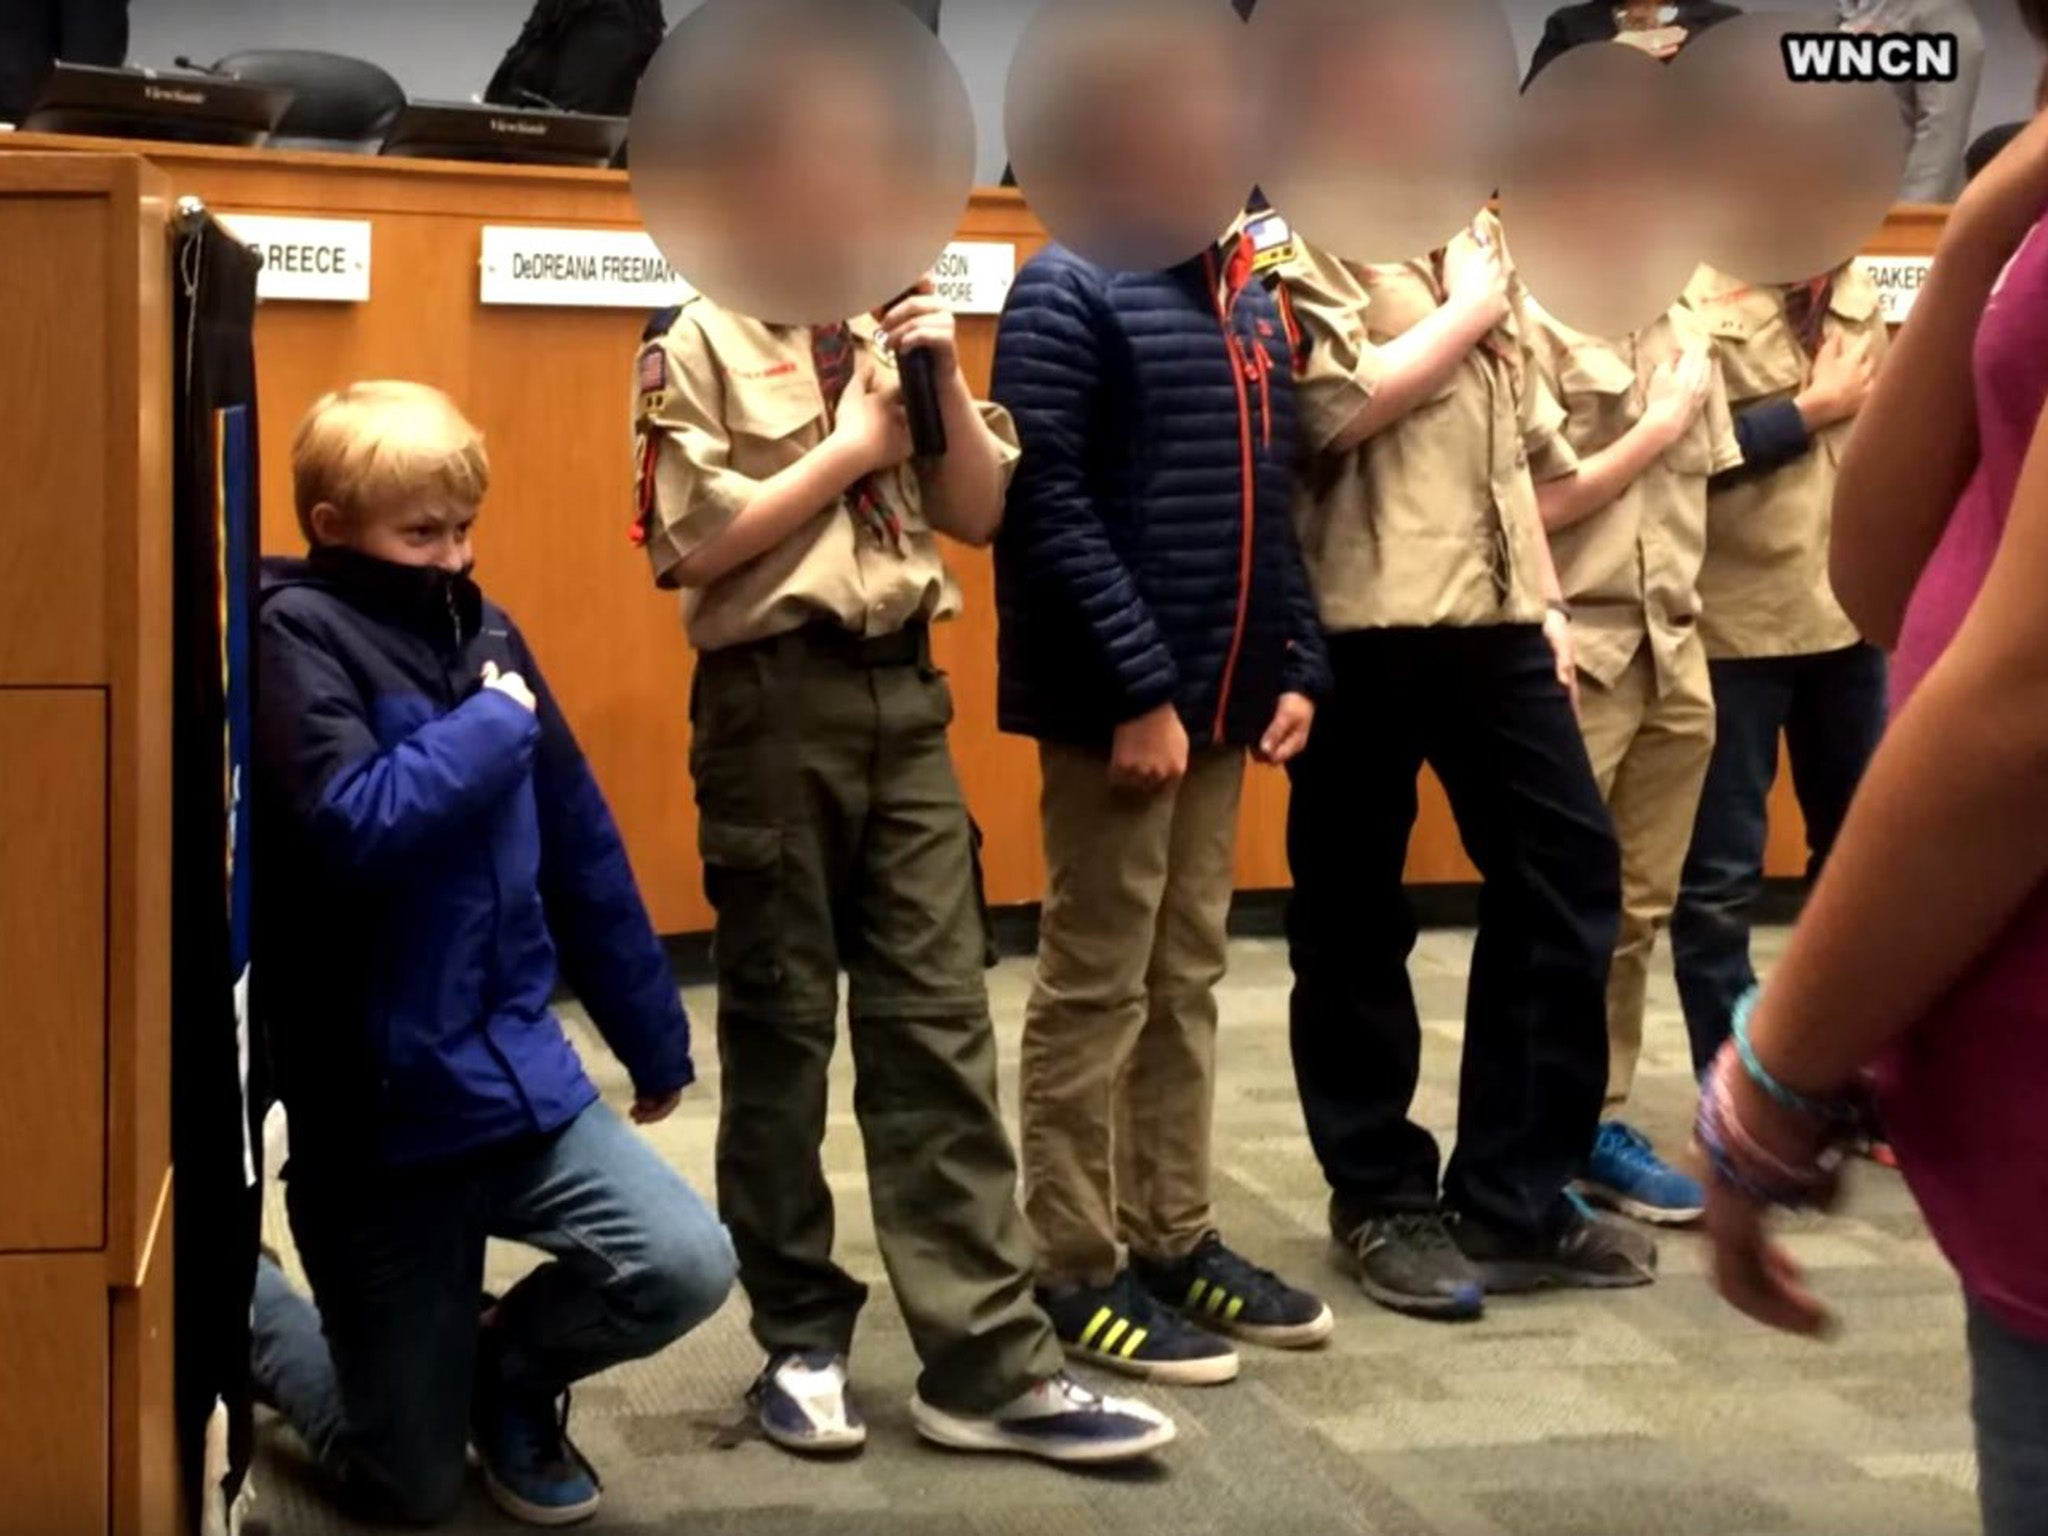 Boy Scouts - latest news, breaking stories and comment - The